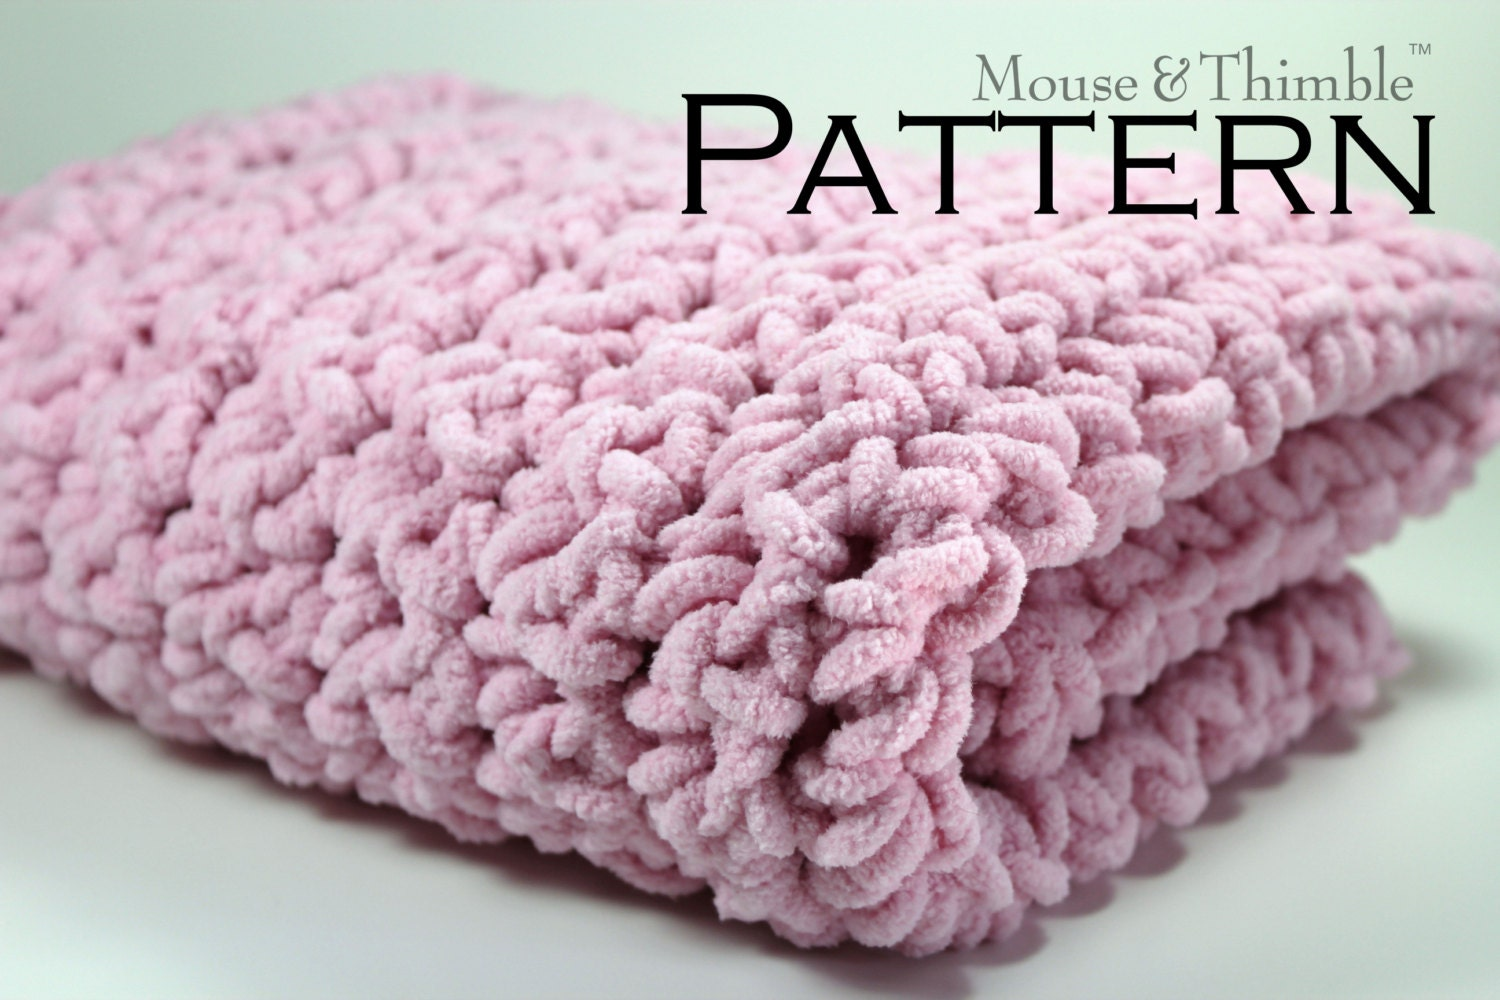 Crochet Stitches For Super Bulky Yarn : Chunky Fleece Baby Blanket Super Bulky Crochet by MouseAndThimble